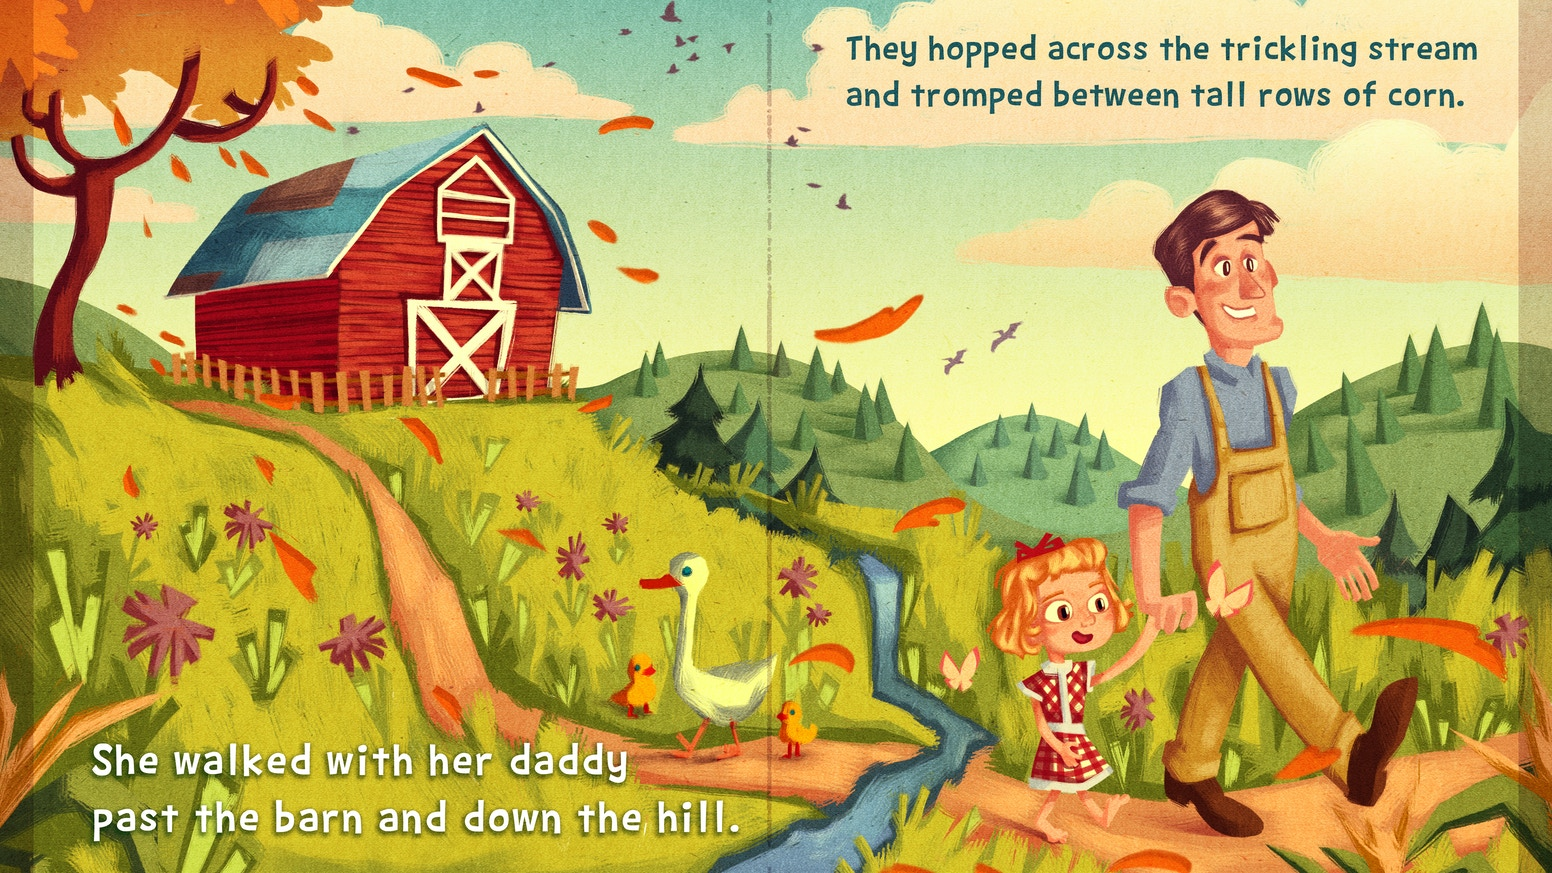 A children's book inspired by my grandmother, her childhood on a Tennessee farm, and her pluck and love of adventure